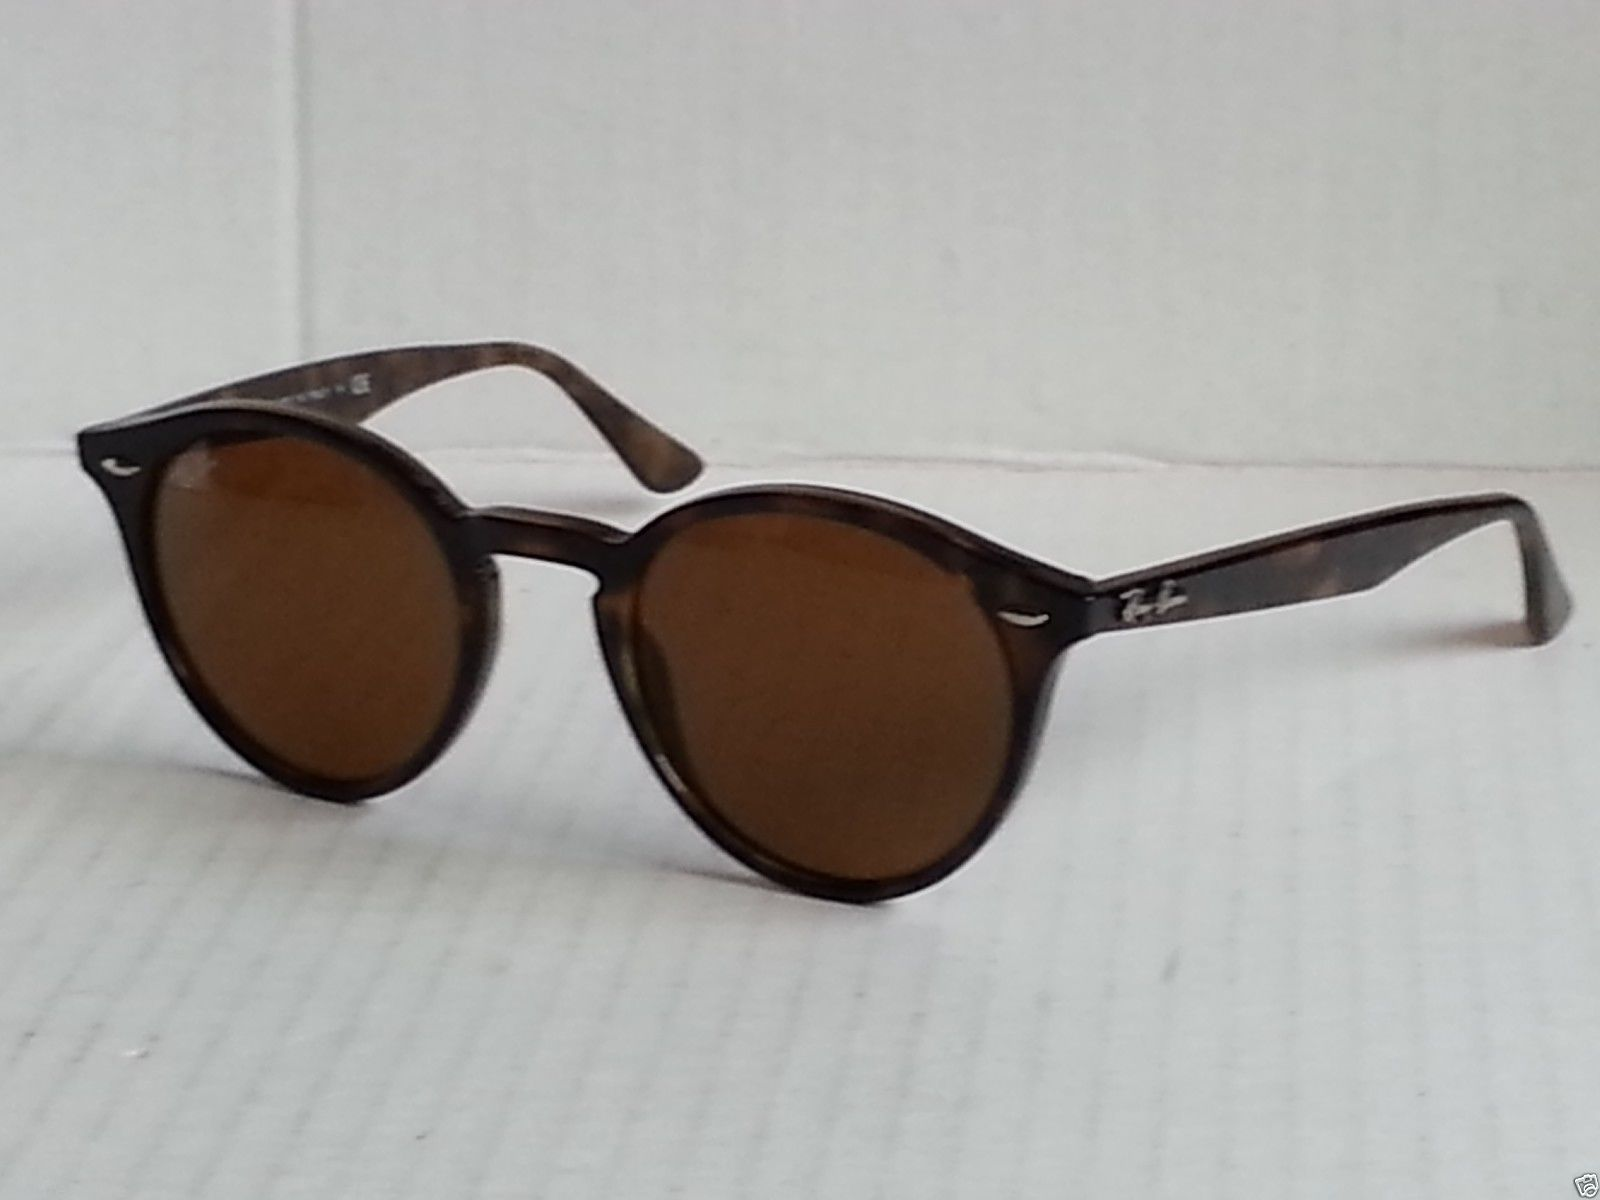 Ray-Ban sunglasses RB 2180 710/73 brown round Made in Italy